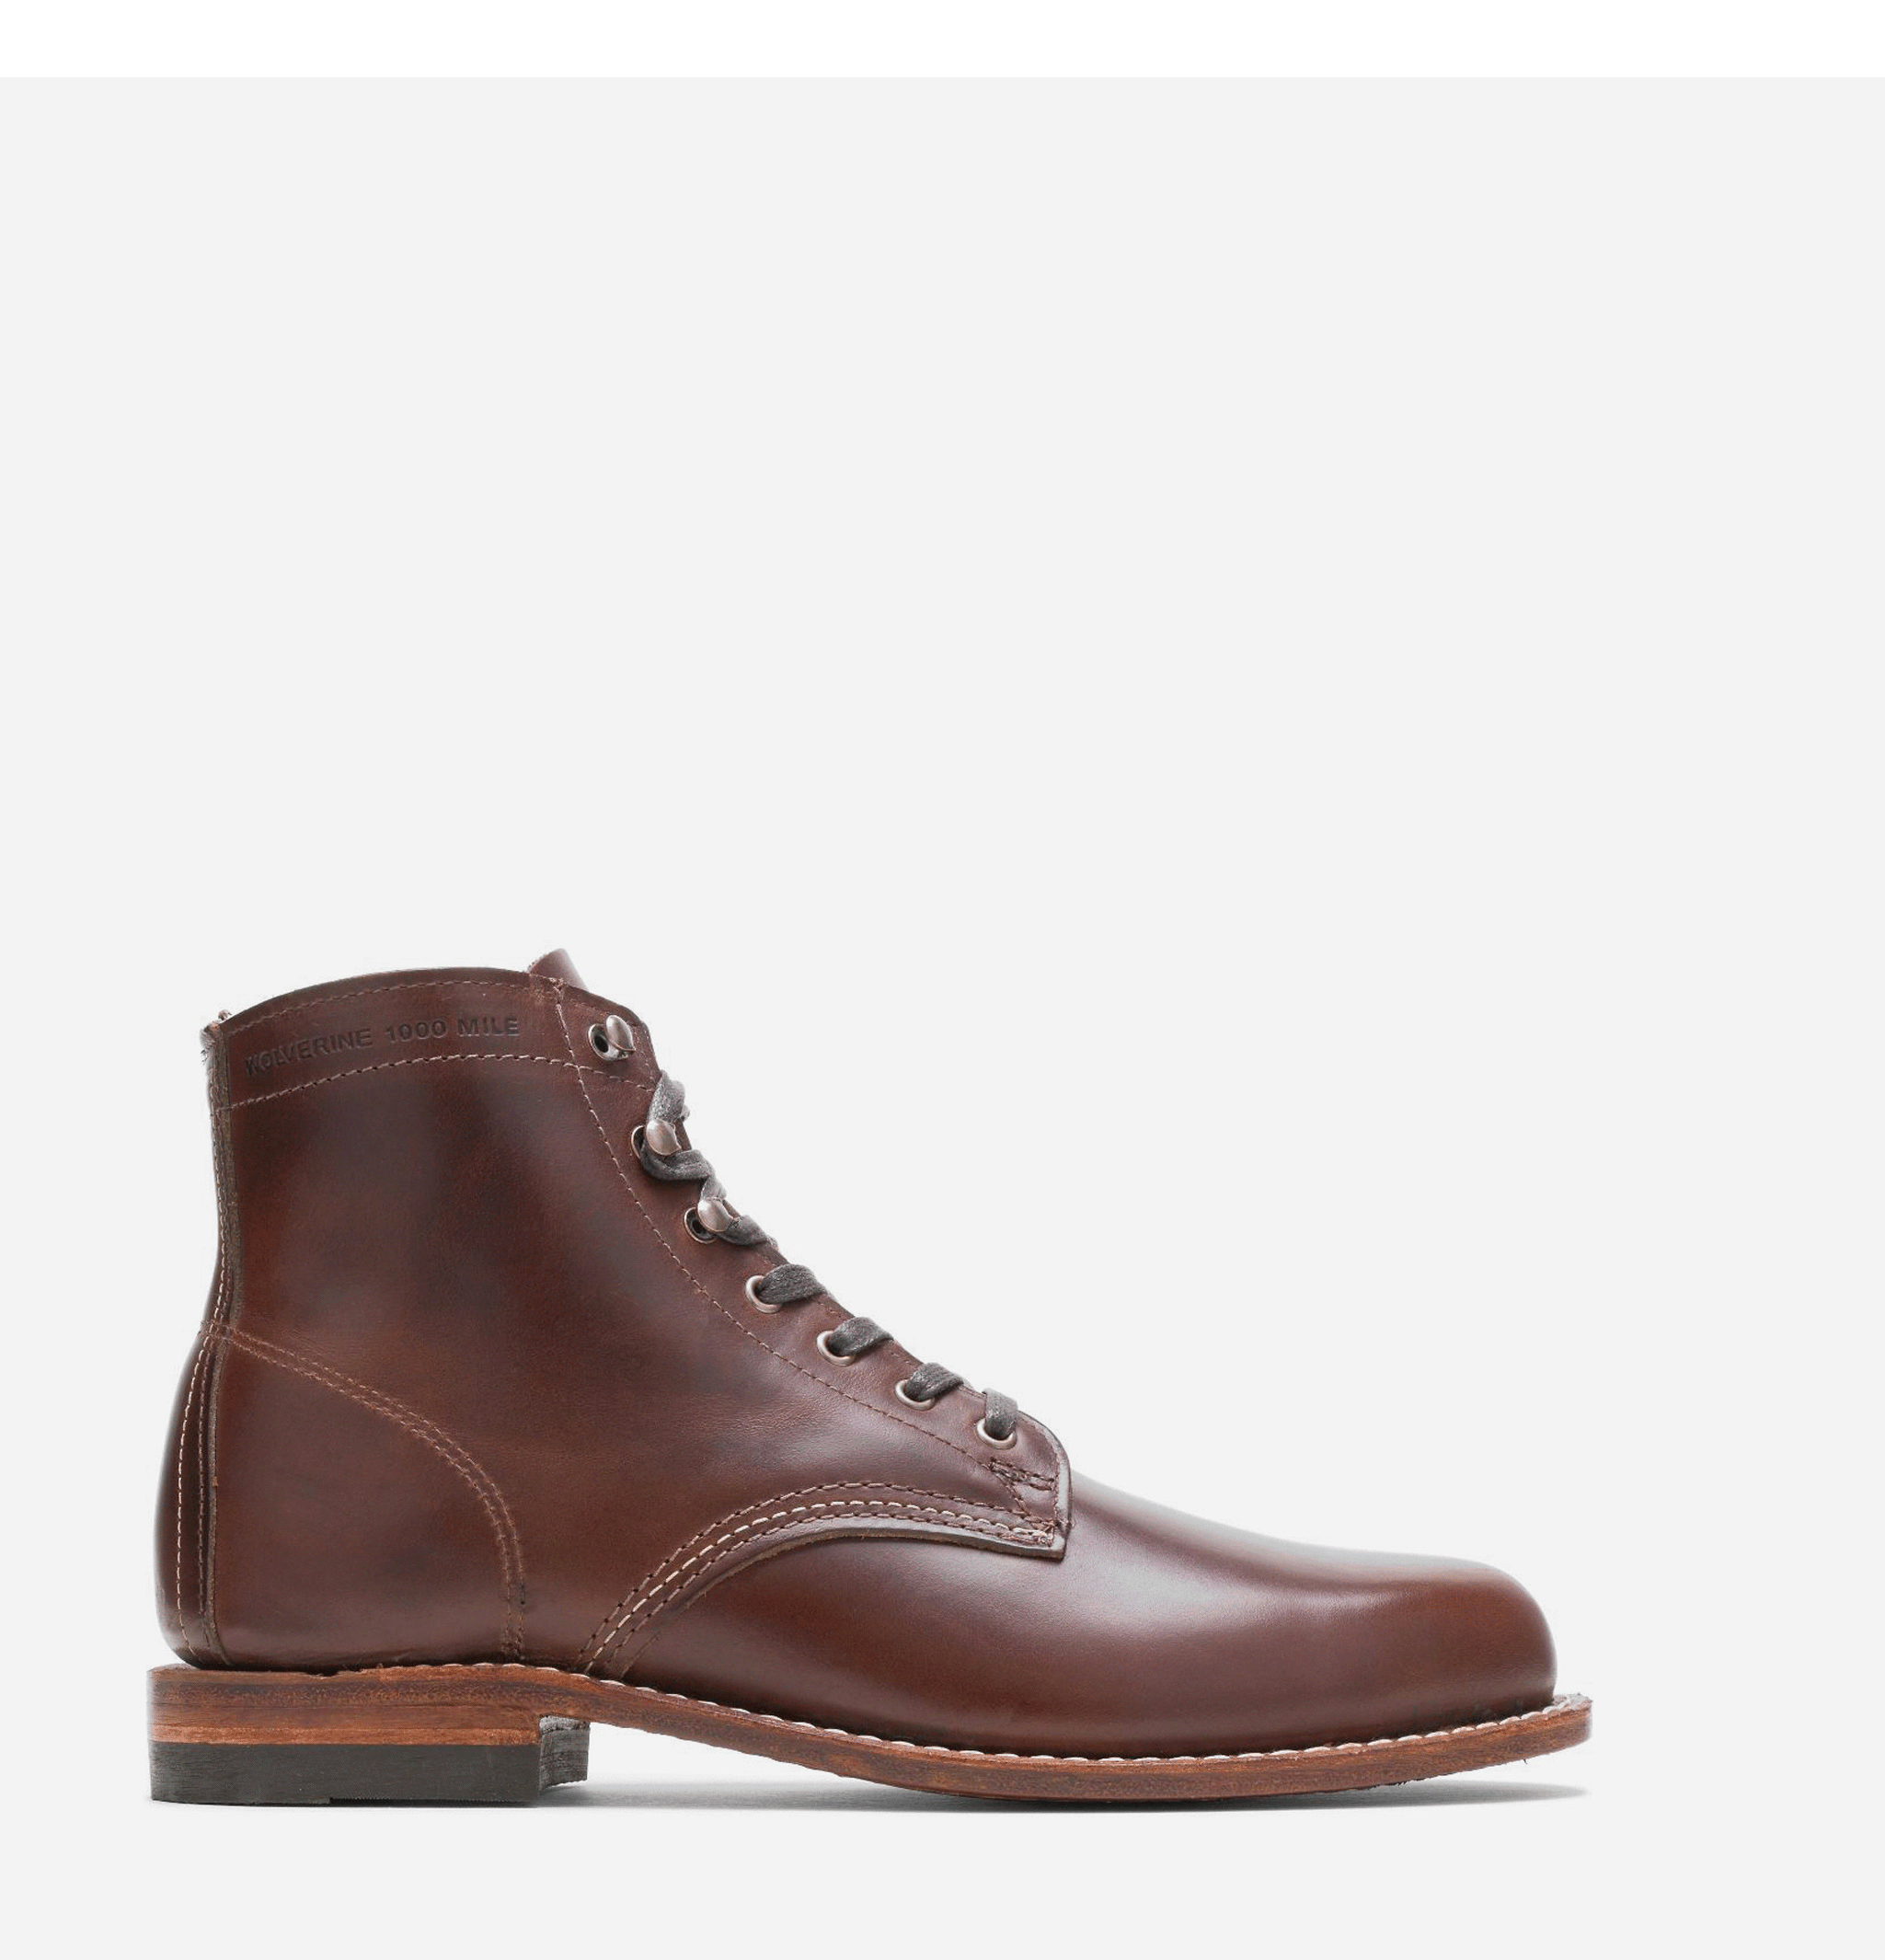 1000 Mile Boots Brown